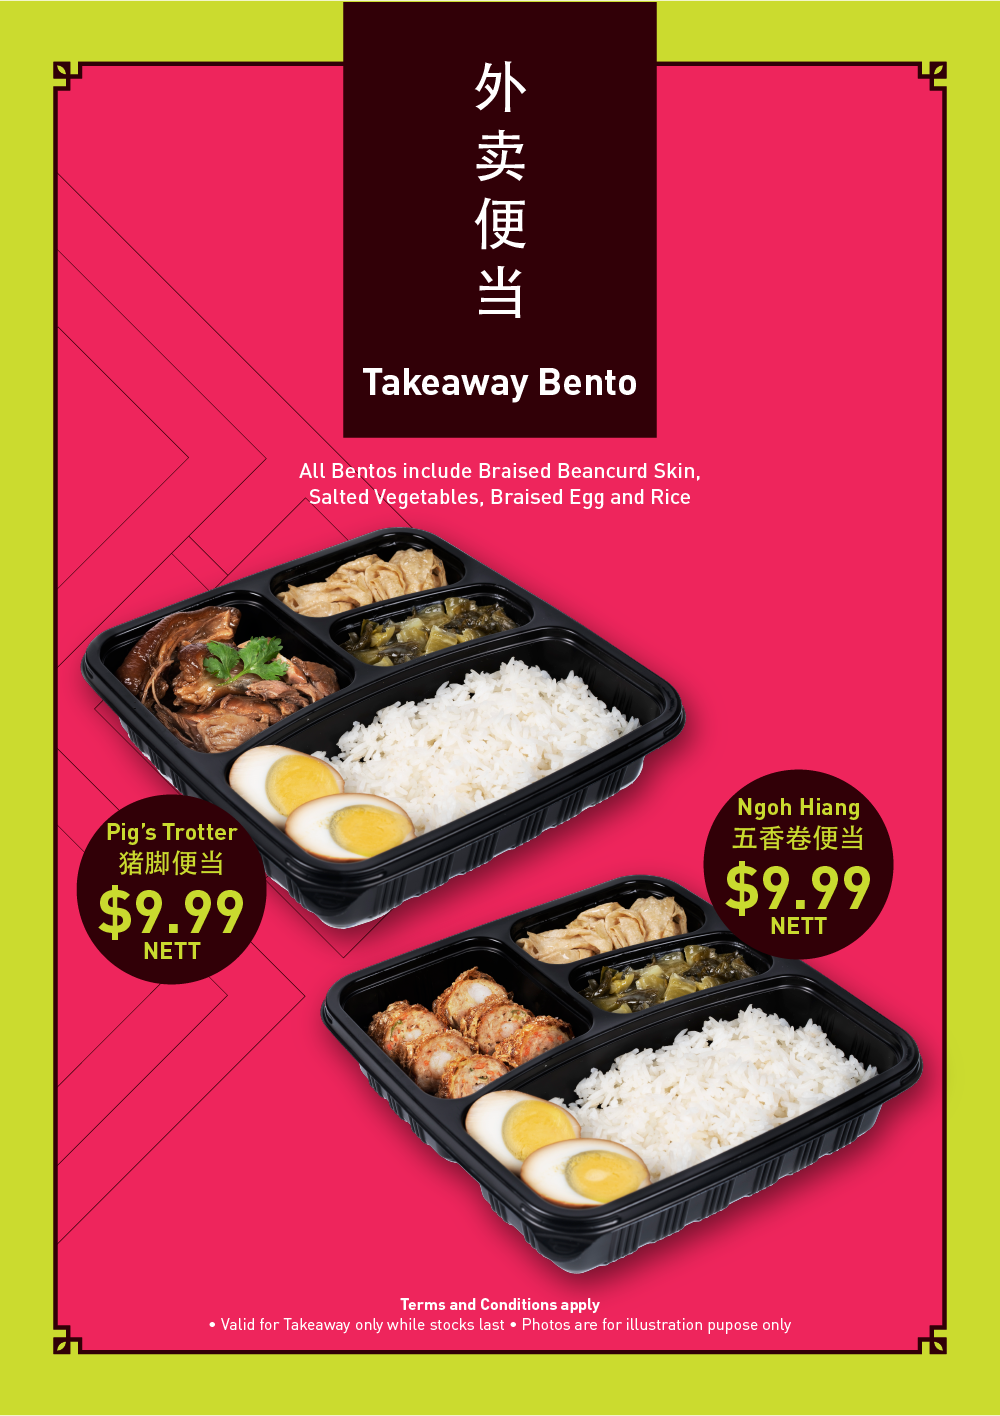 Song Fa Bak Kut Teh Promotion Bento